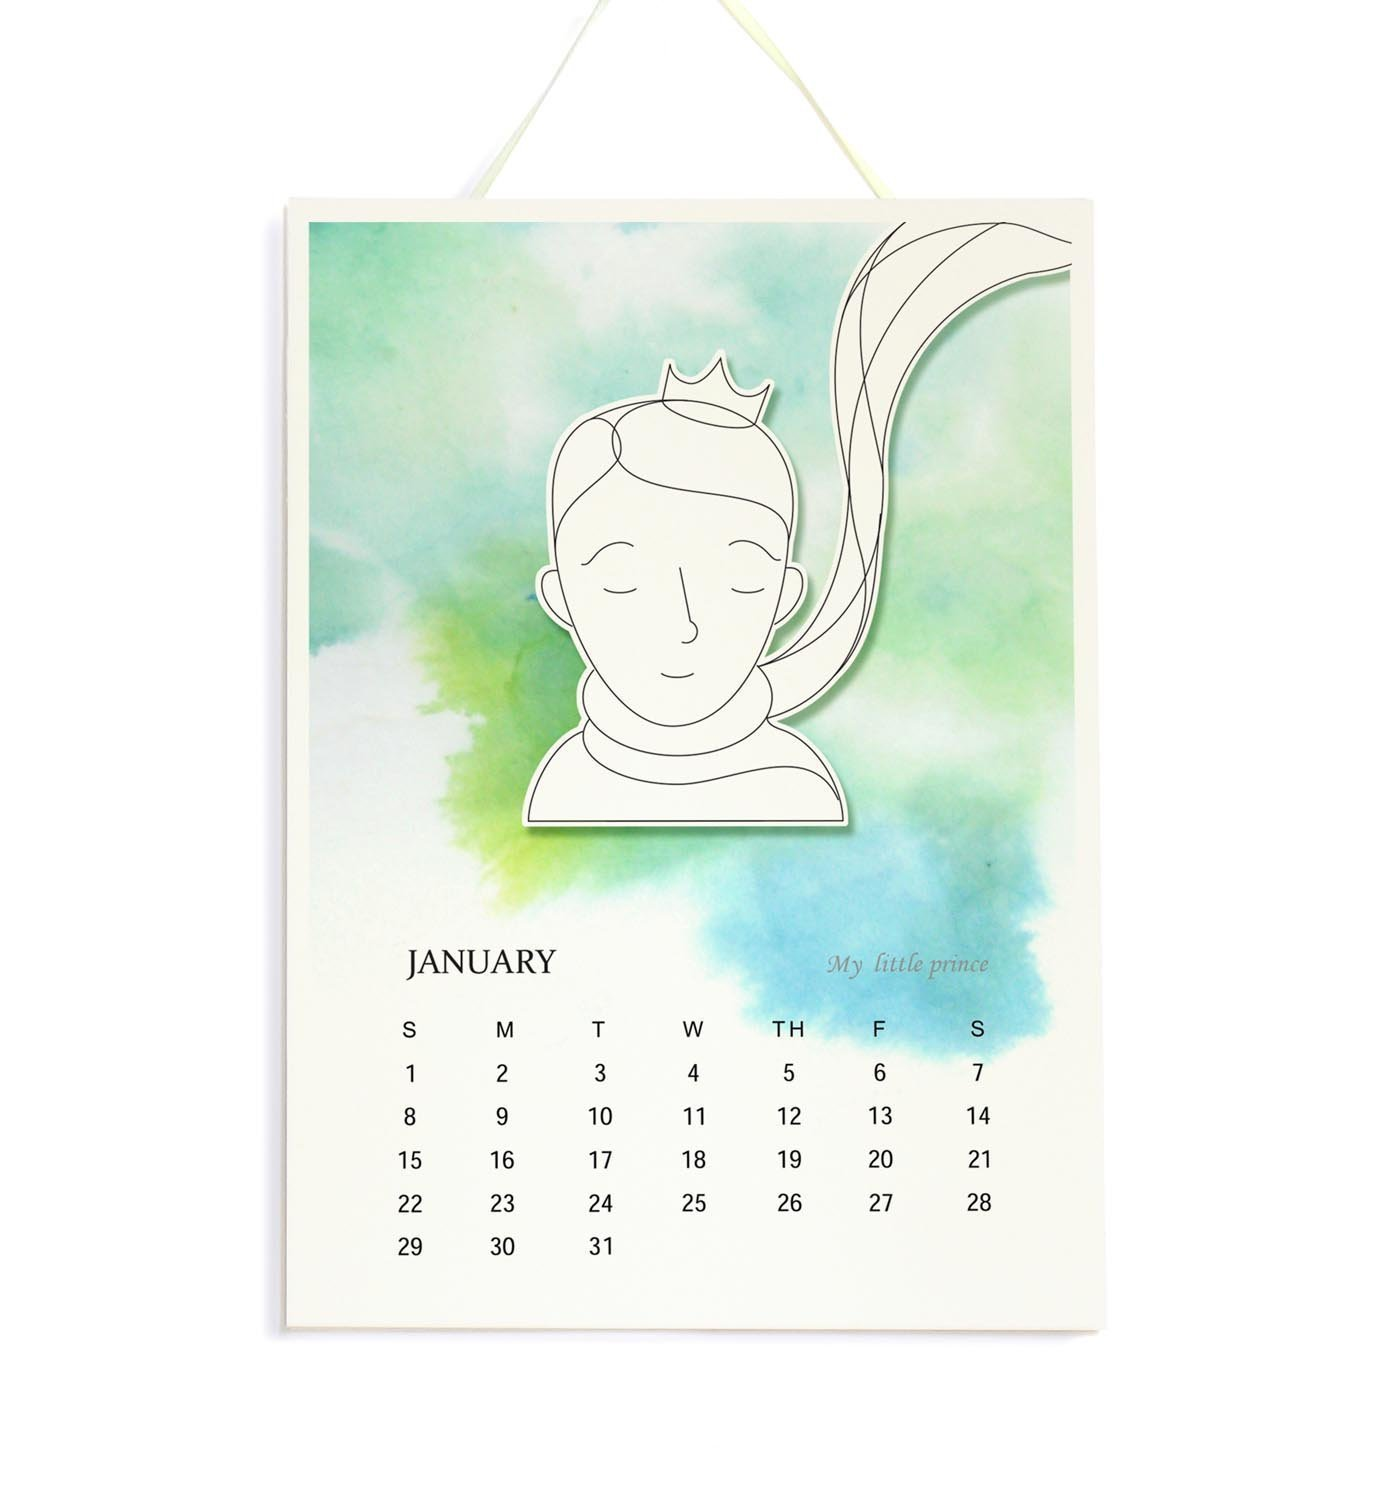 Little Prince - 2018 Wall Calendar, A4 Watercolor Calendar, Children Room Decor, New Year Gift for Le Petit Prince Fans, Kids, and Grow-up